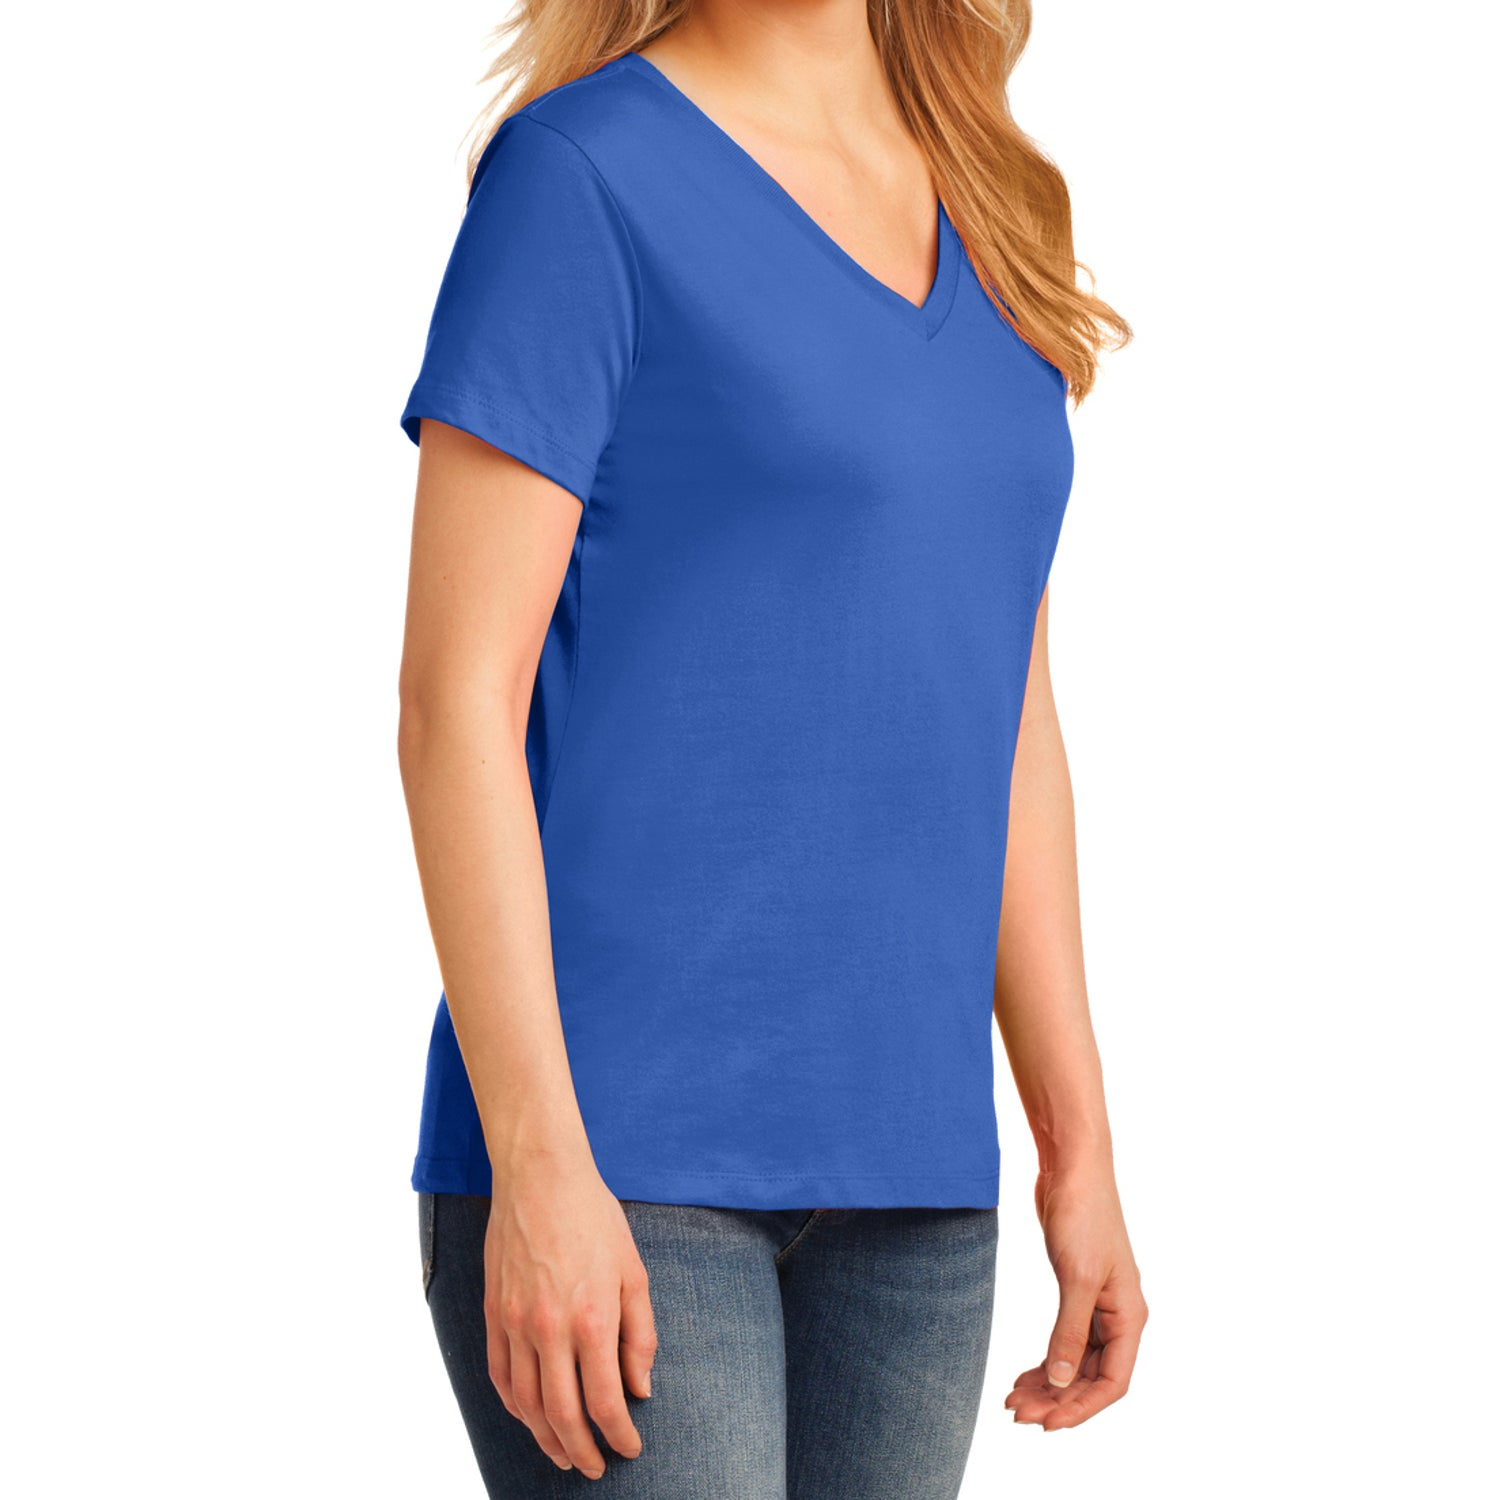 Women's Core Cotton V-Neck Tee - Royal - Side